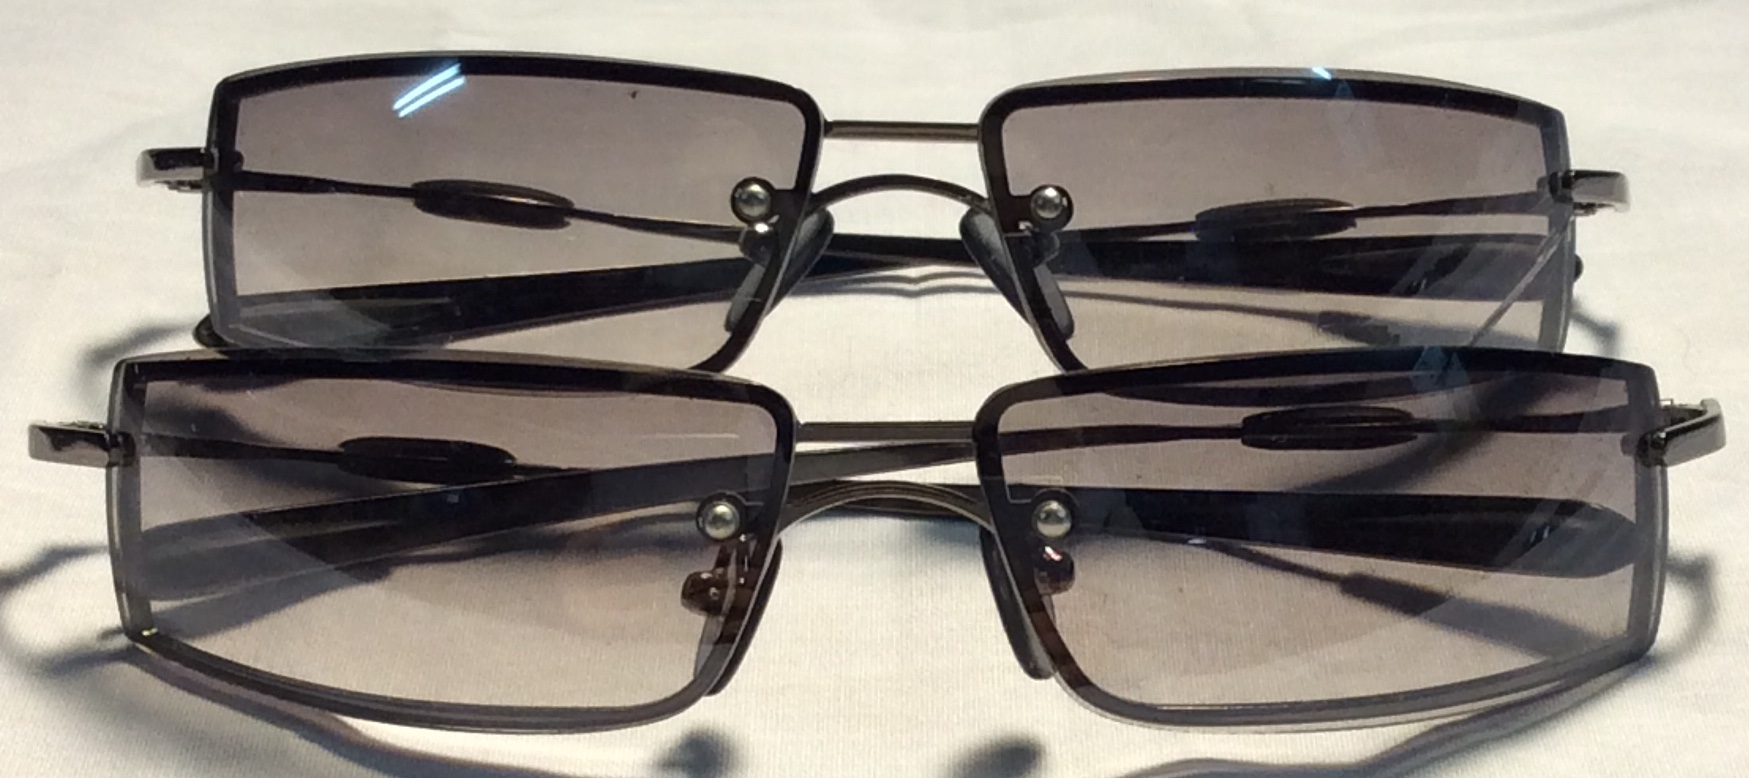 Silver metal frames, black rubber